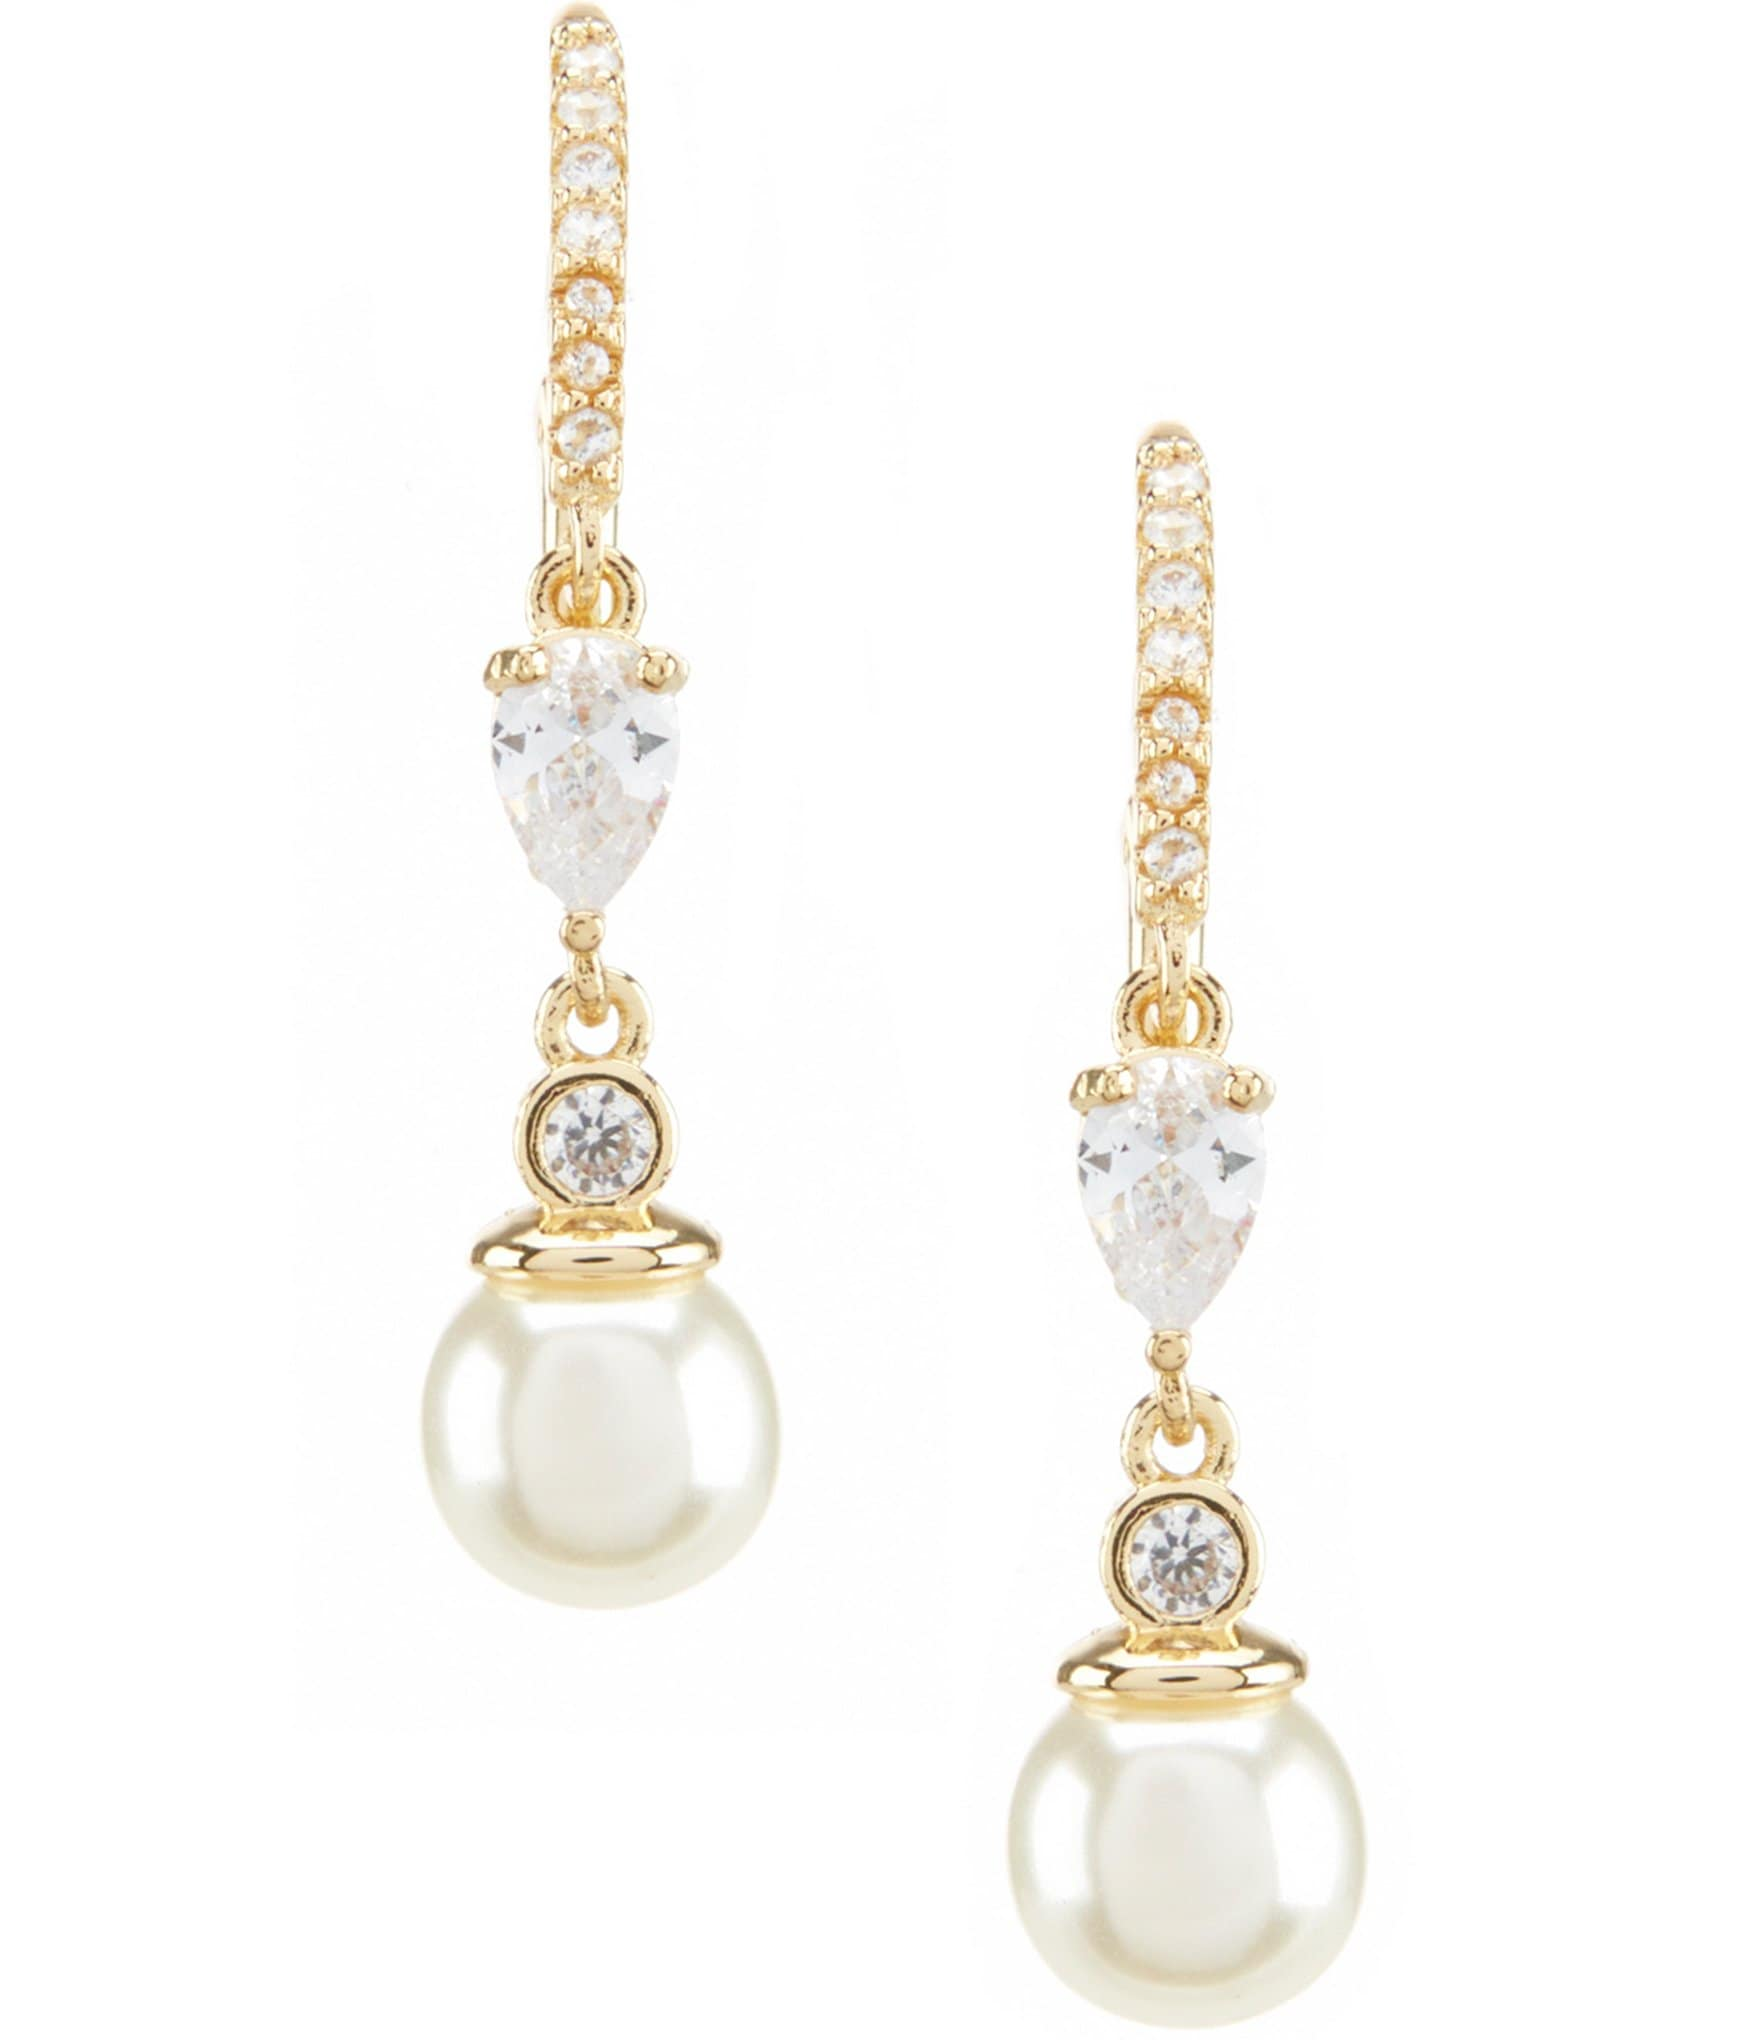 Anne Klein Faux Pearl Drop Earrings